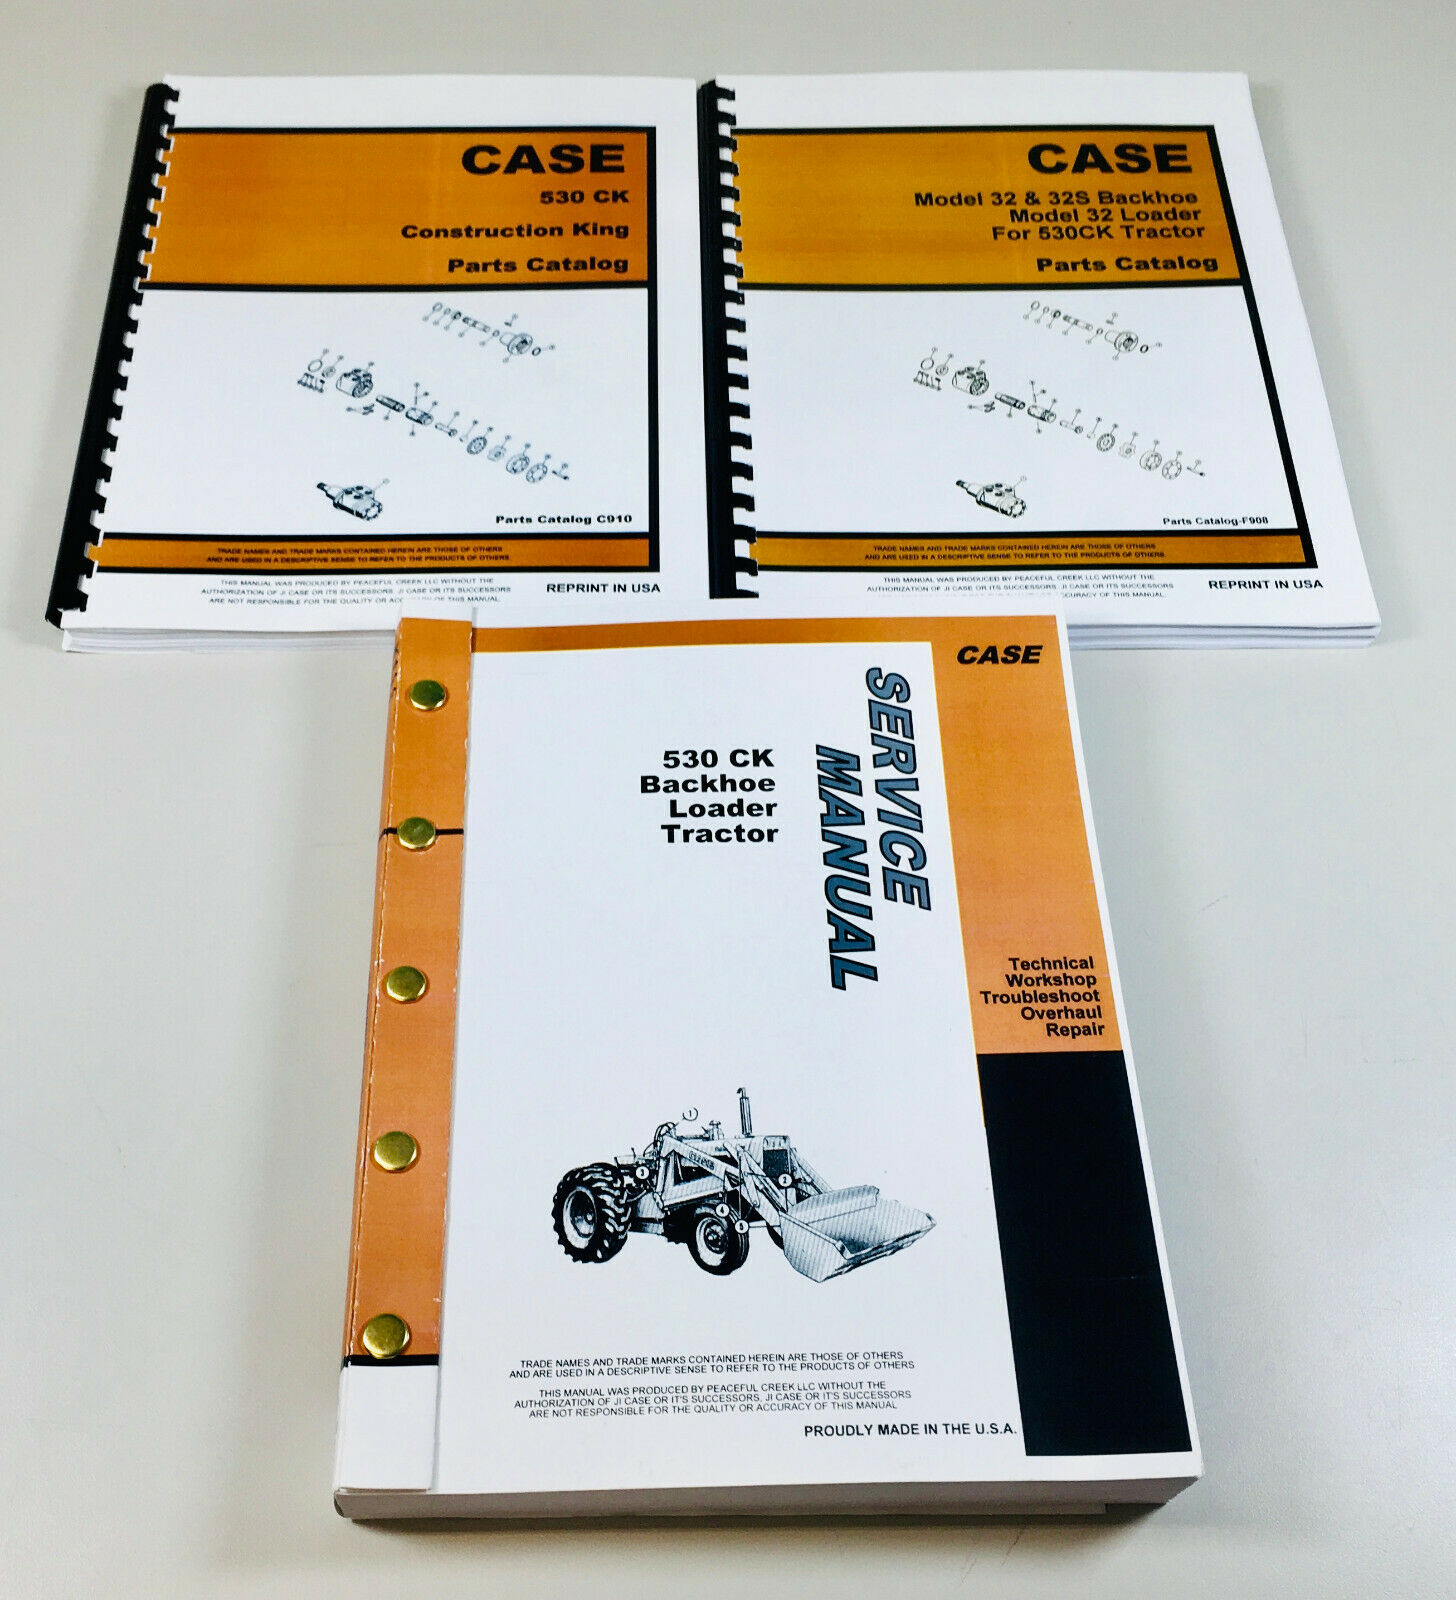 Case 530Ck Tractor Loader Backhoe Service Manual Parts Catalog Construction  King 1 of 11FREE Shipping ...